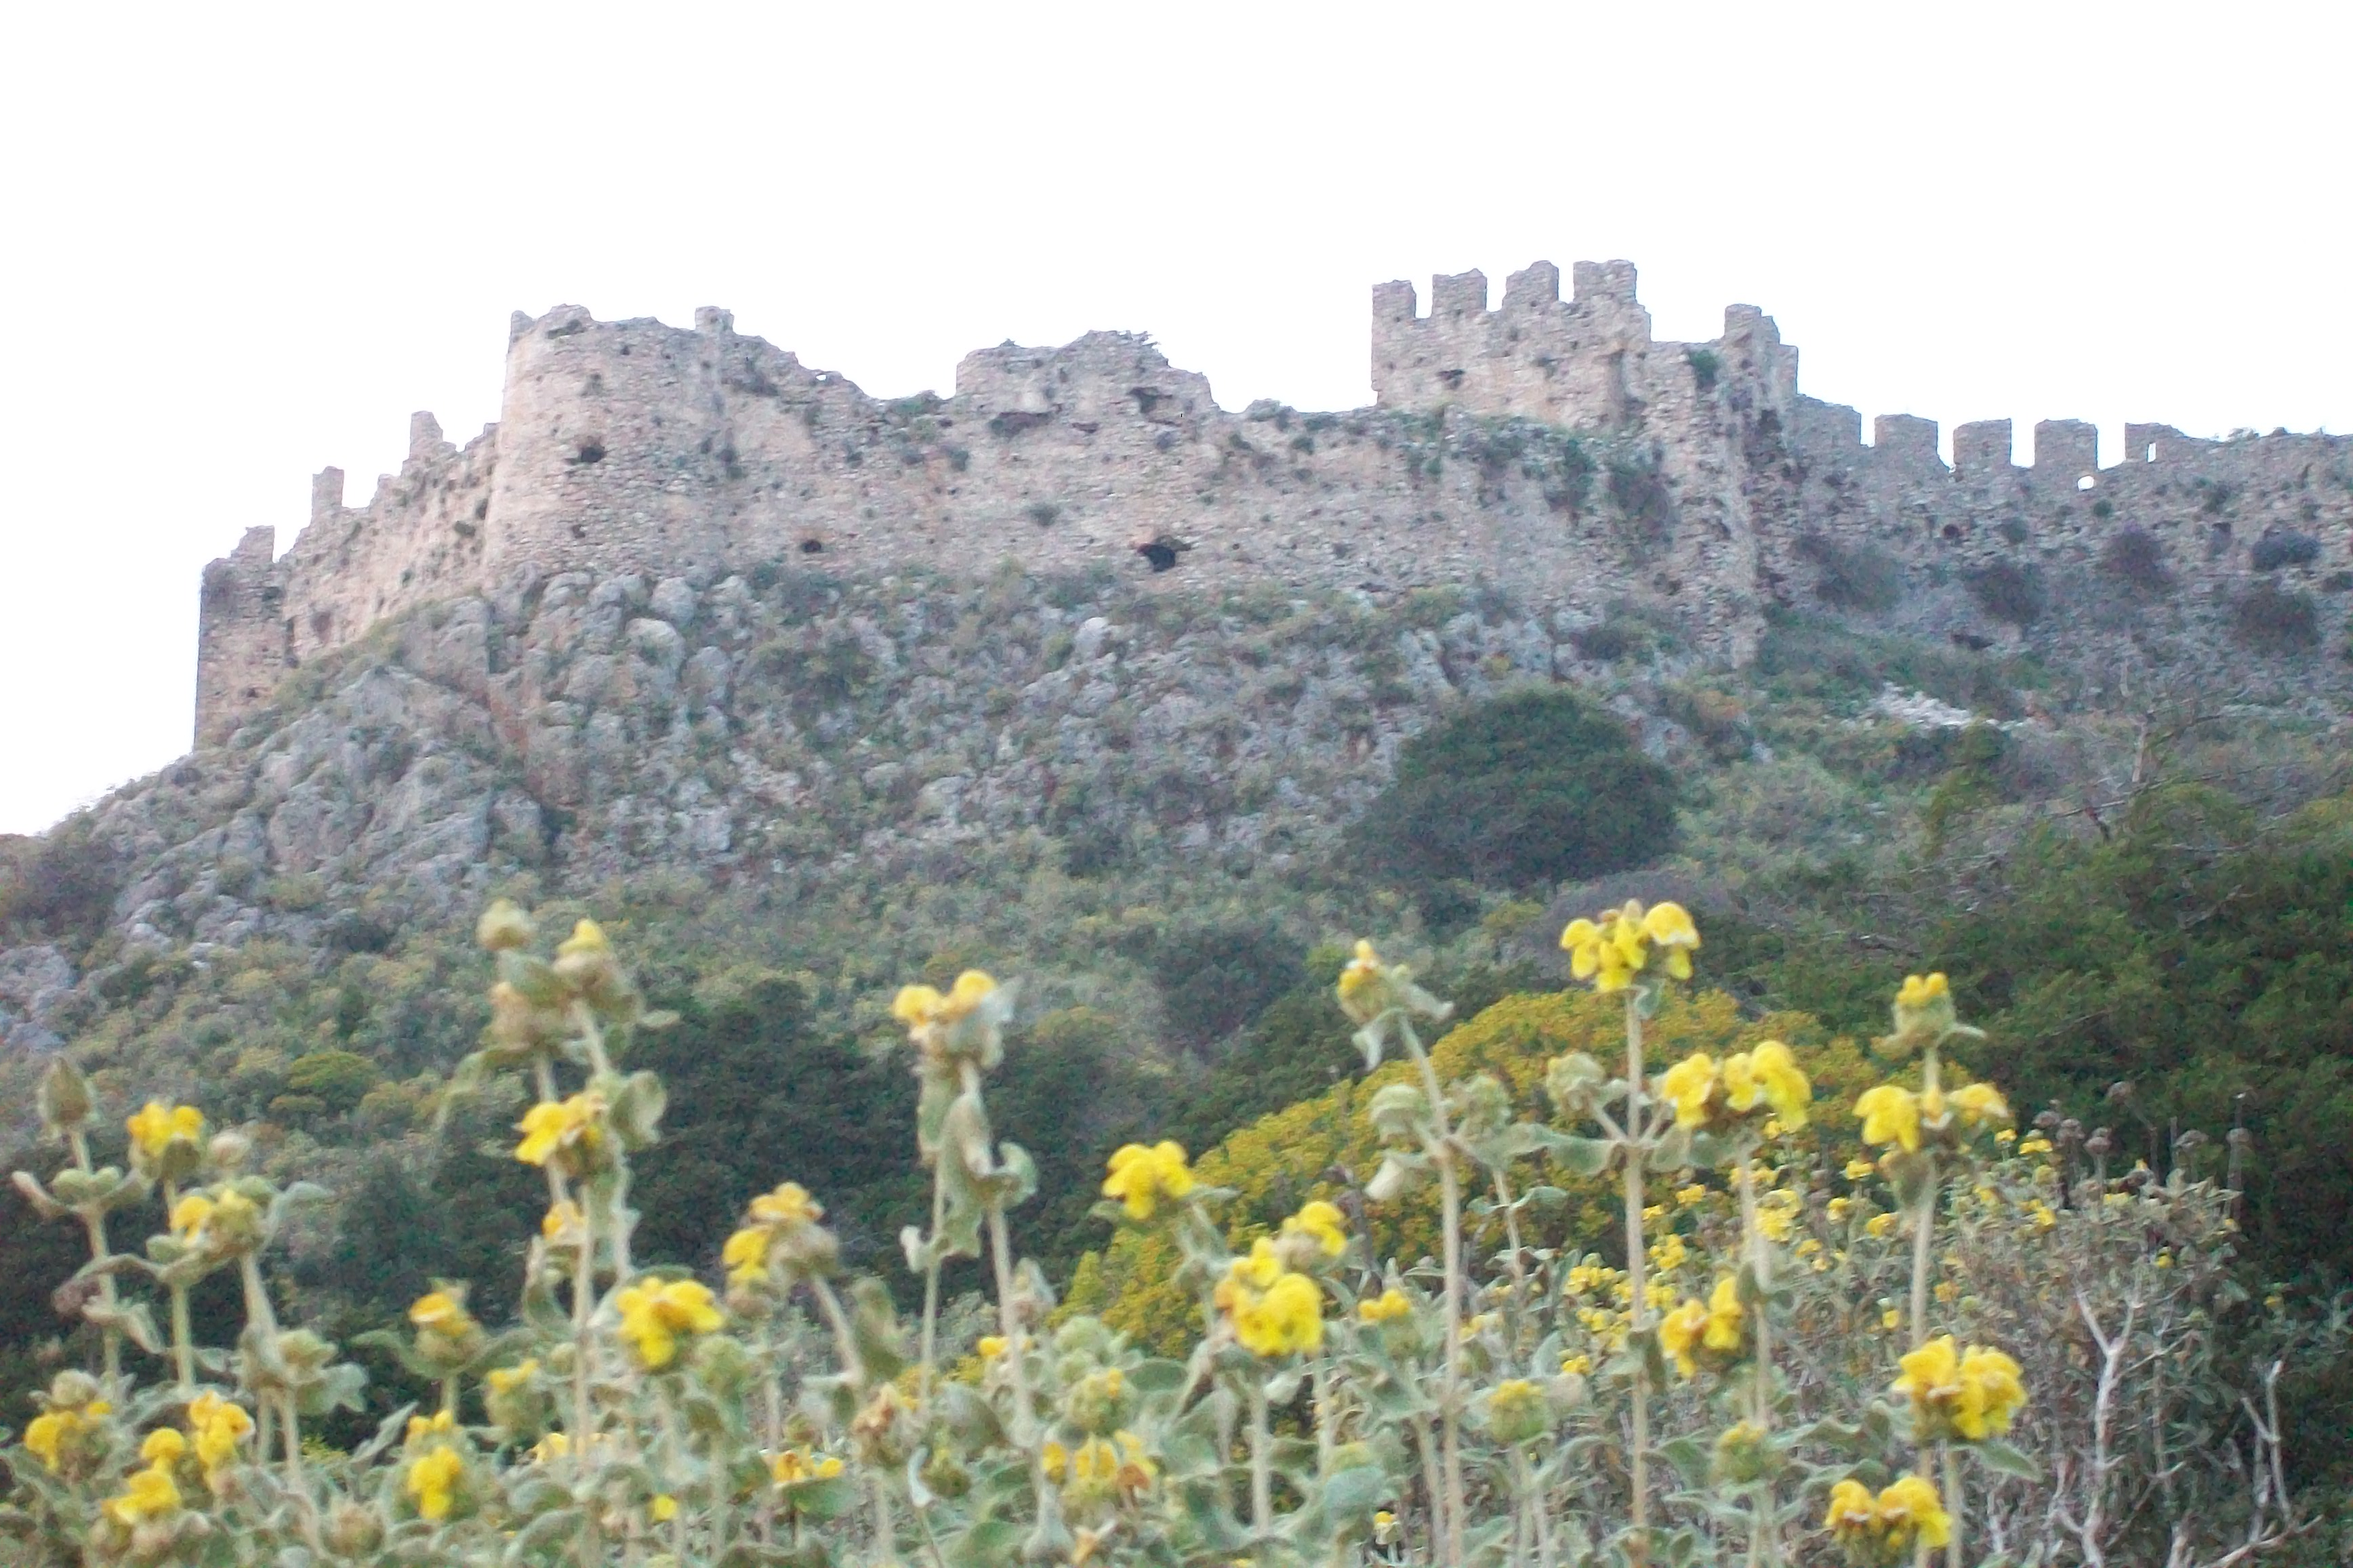 Paleo-Kastro, frankish castle from 13th century which overlooks the natural harbor of Navarin. This name comes from the Avars, invaders coming from Central Asia at the 8th century AC.